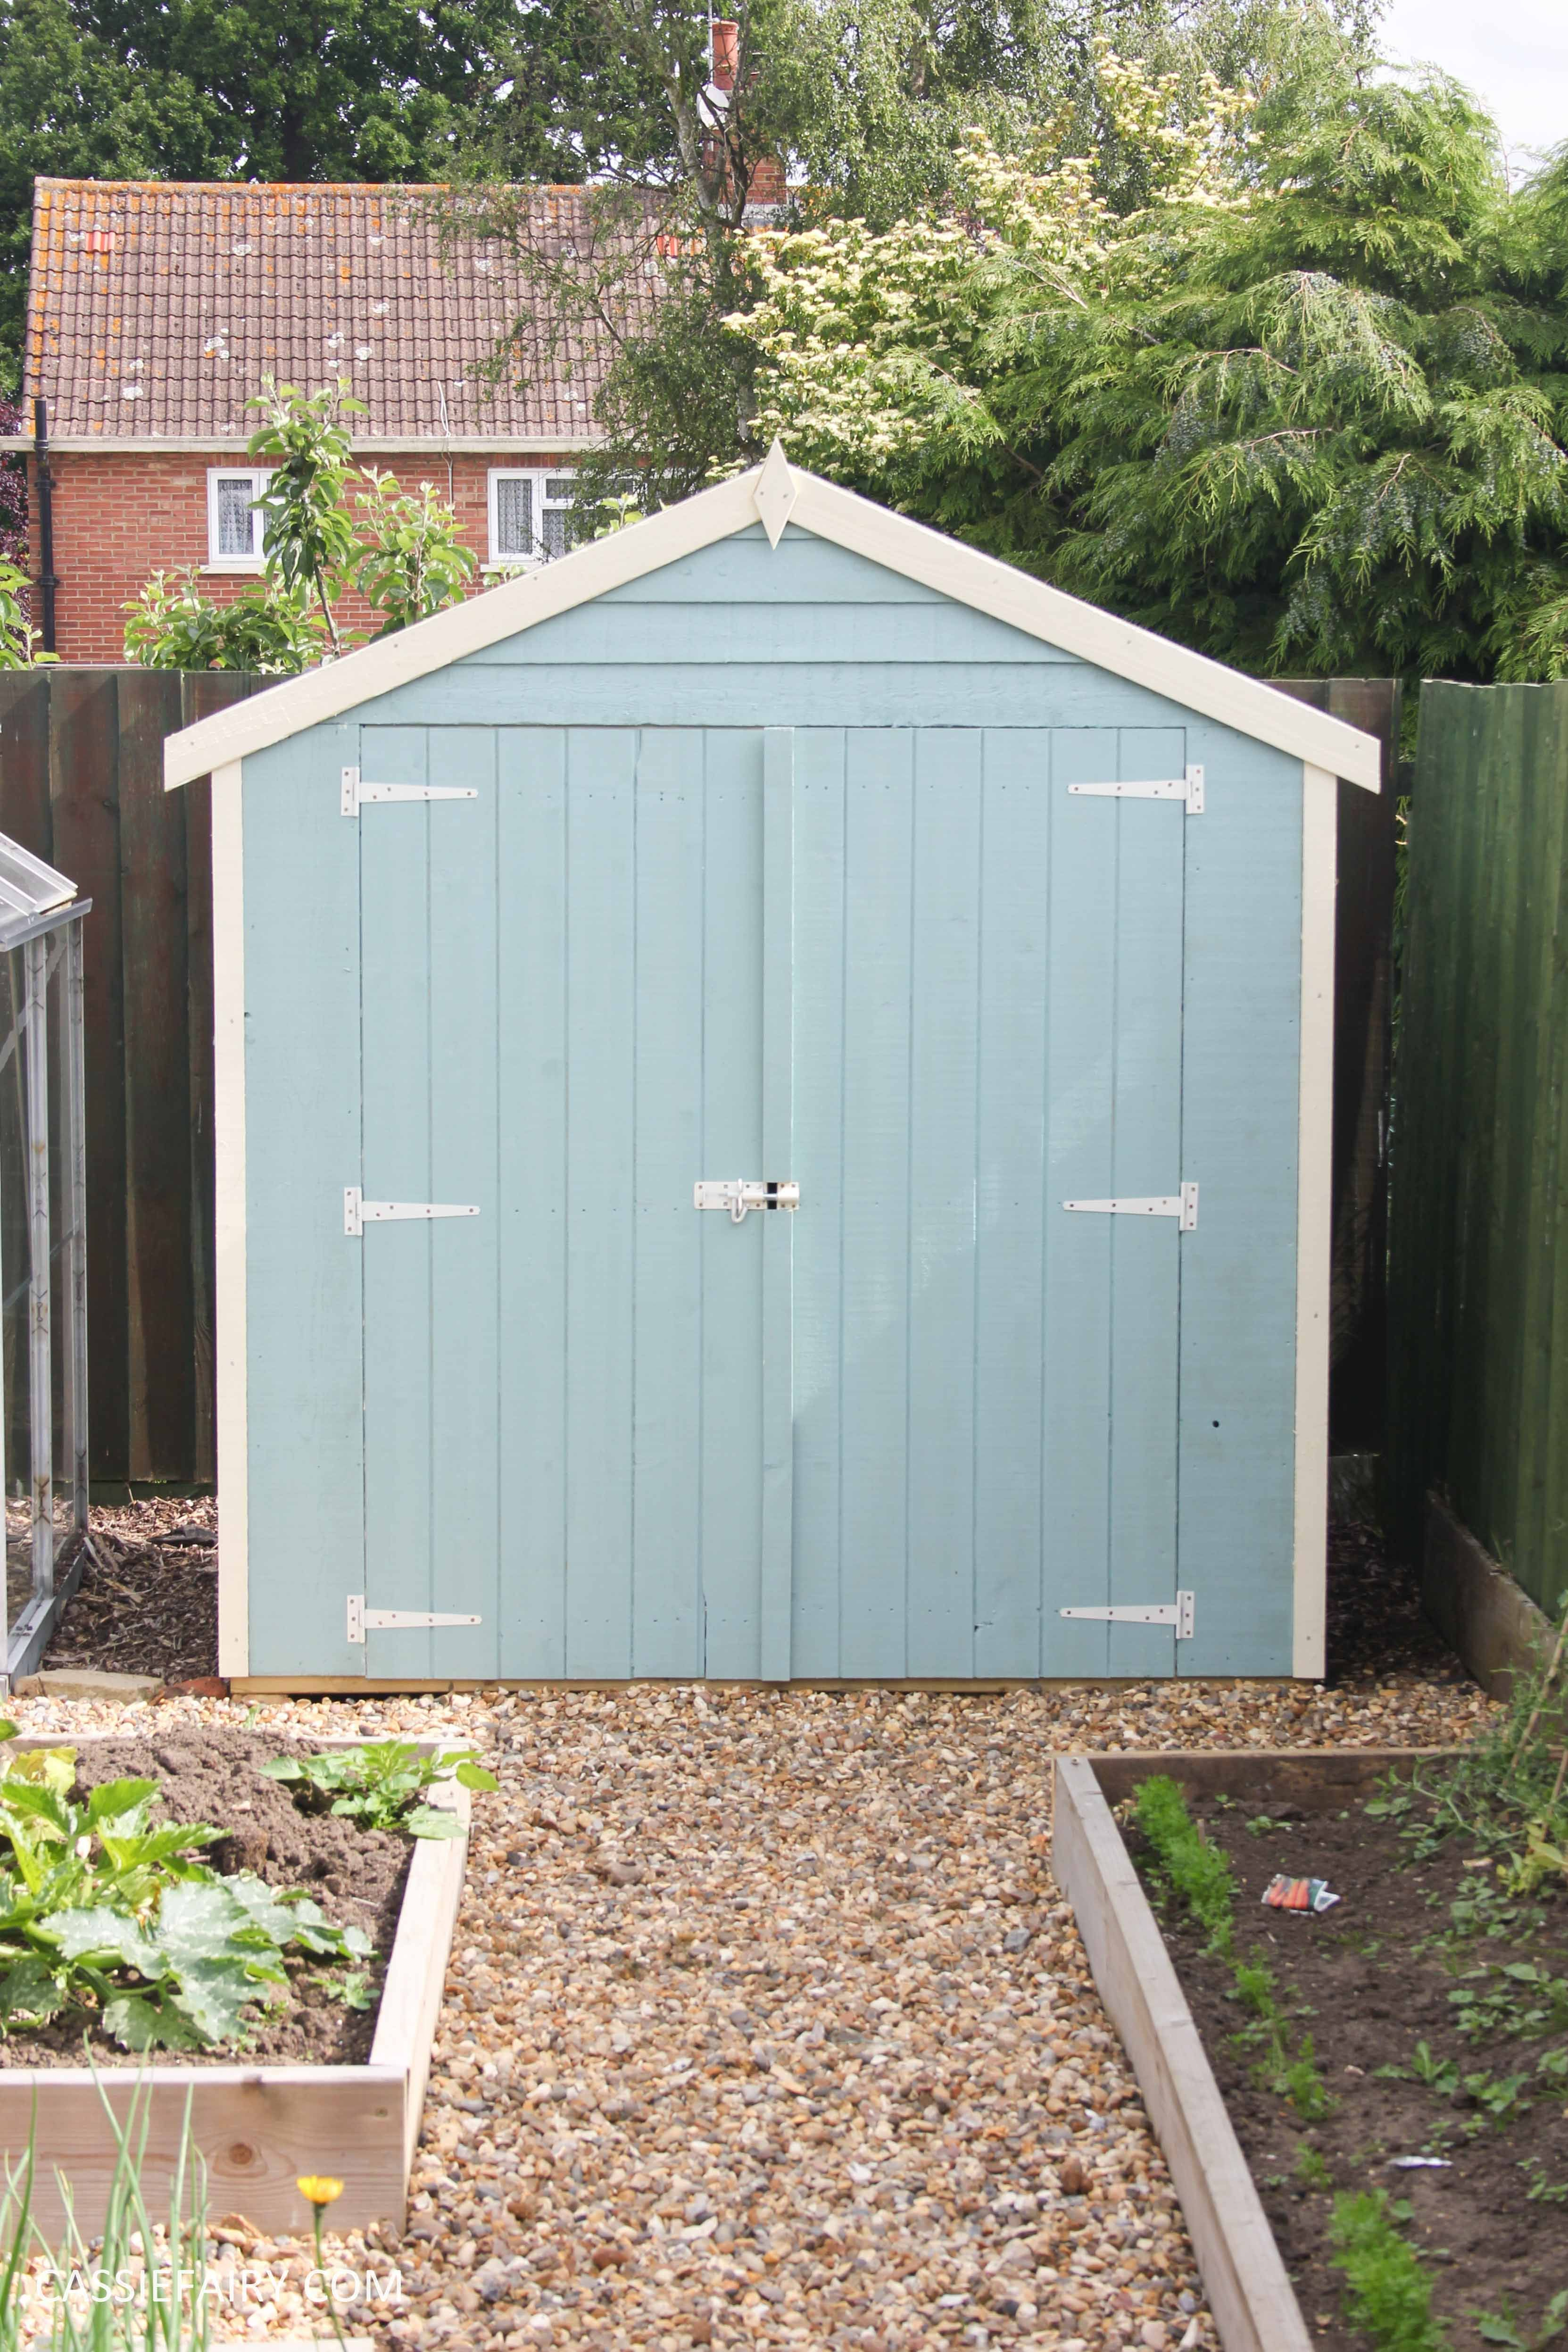 building for carports size full storage shed and used a sheds of more sale metal build garage carport kit small wooden wood with